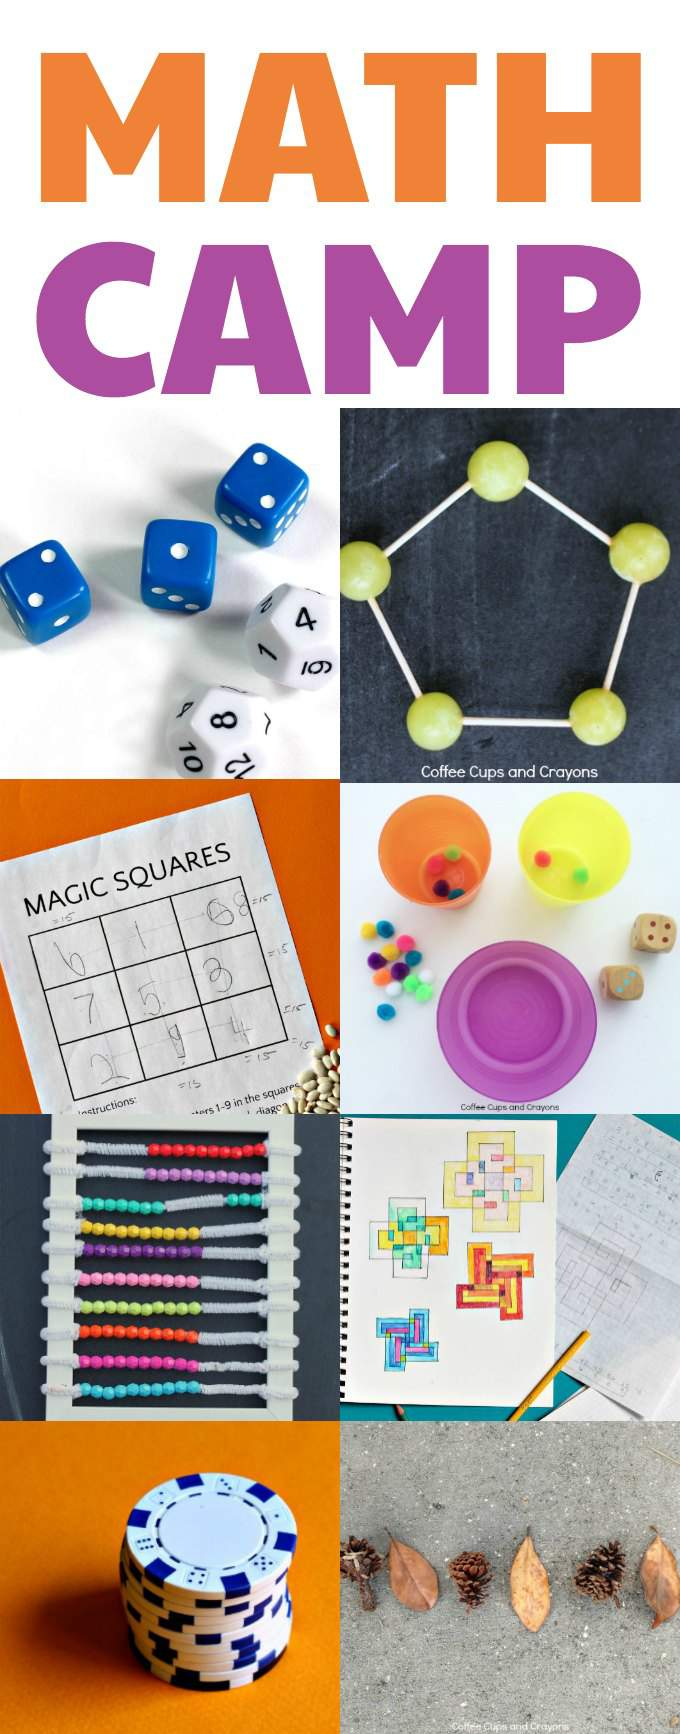 Do It Yourself Math Camp At Home For Kids